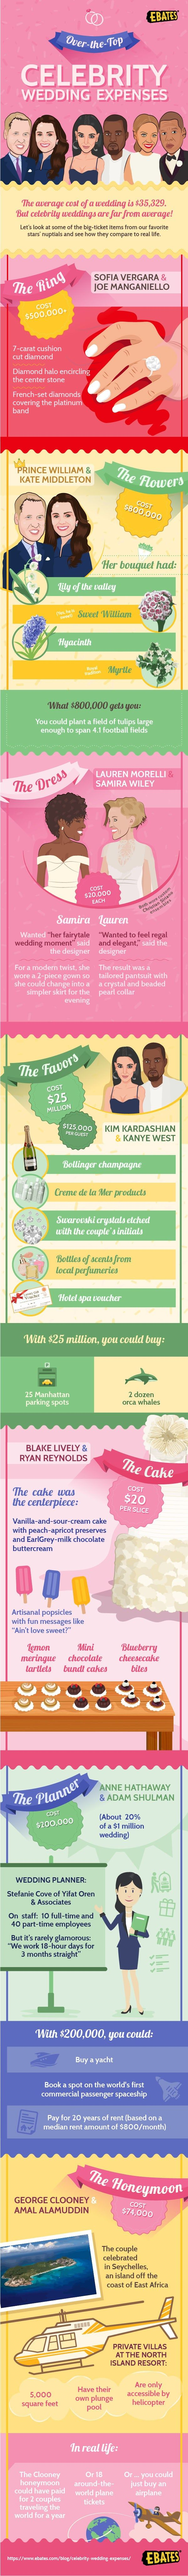 Over-the-Top Celebrity Wedding Expenses #Infographic